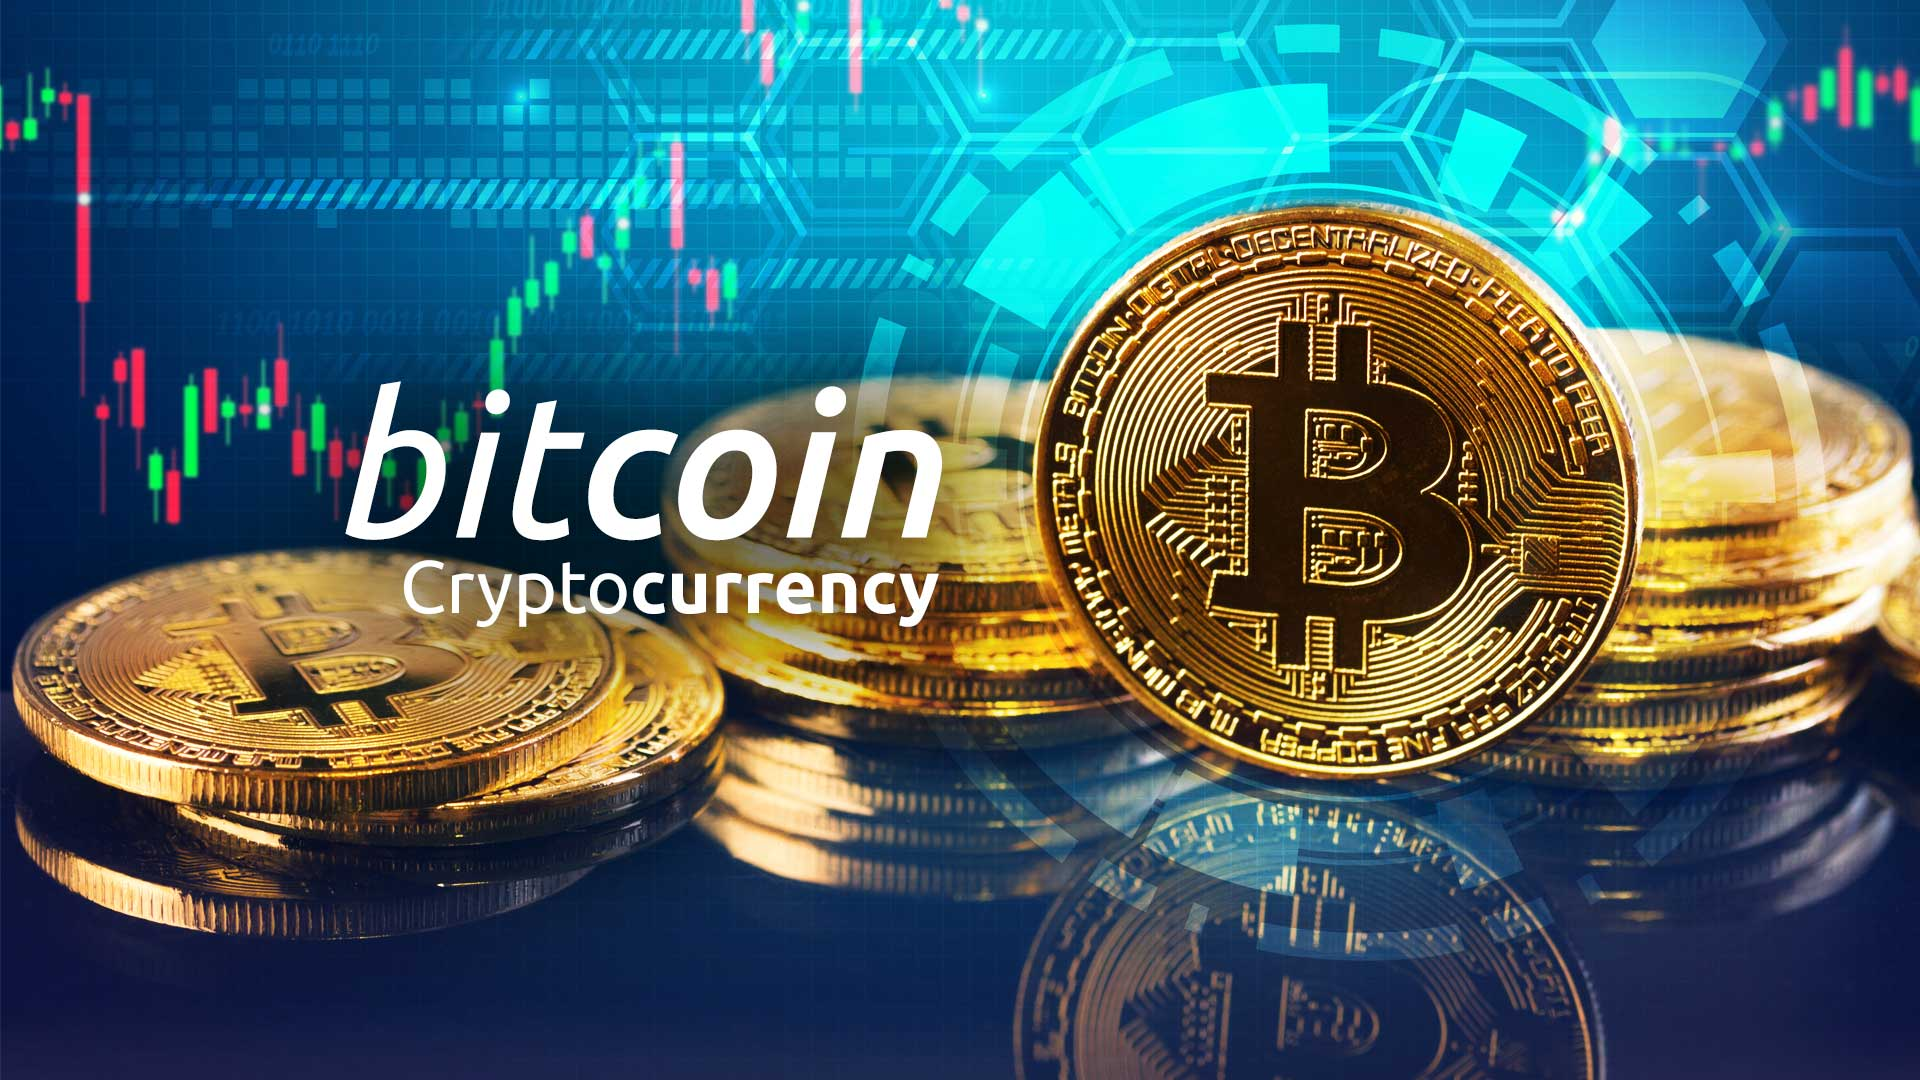 What is Bitcoin Cryptocurrency?